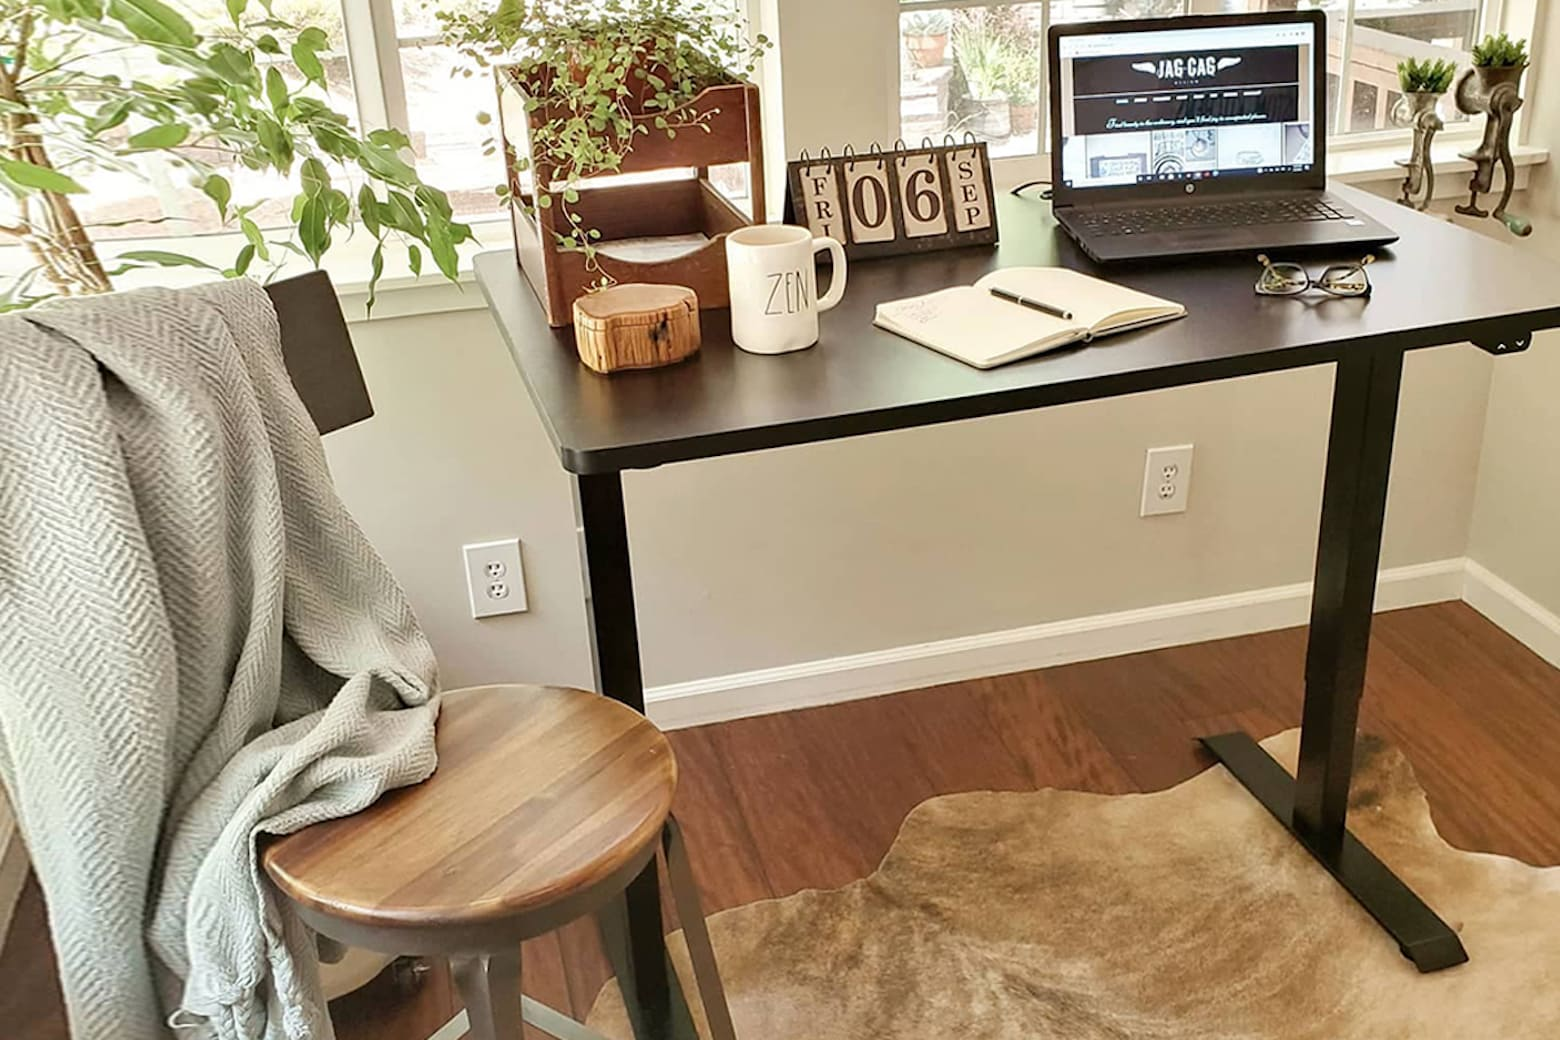 Improve your comfort and productivity in 2021 with this affordable standing desk